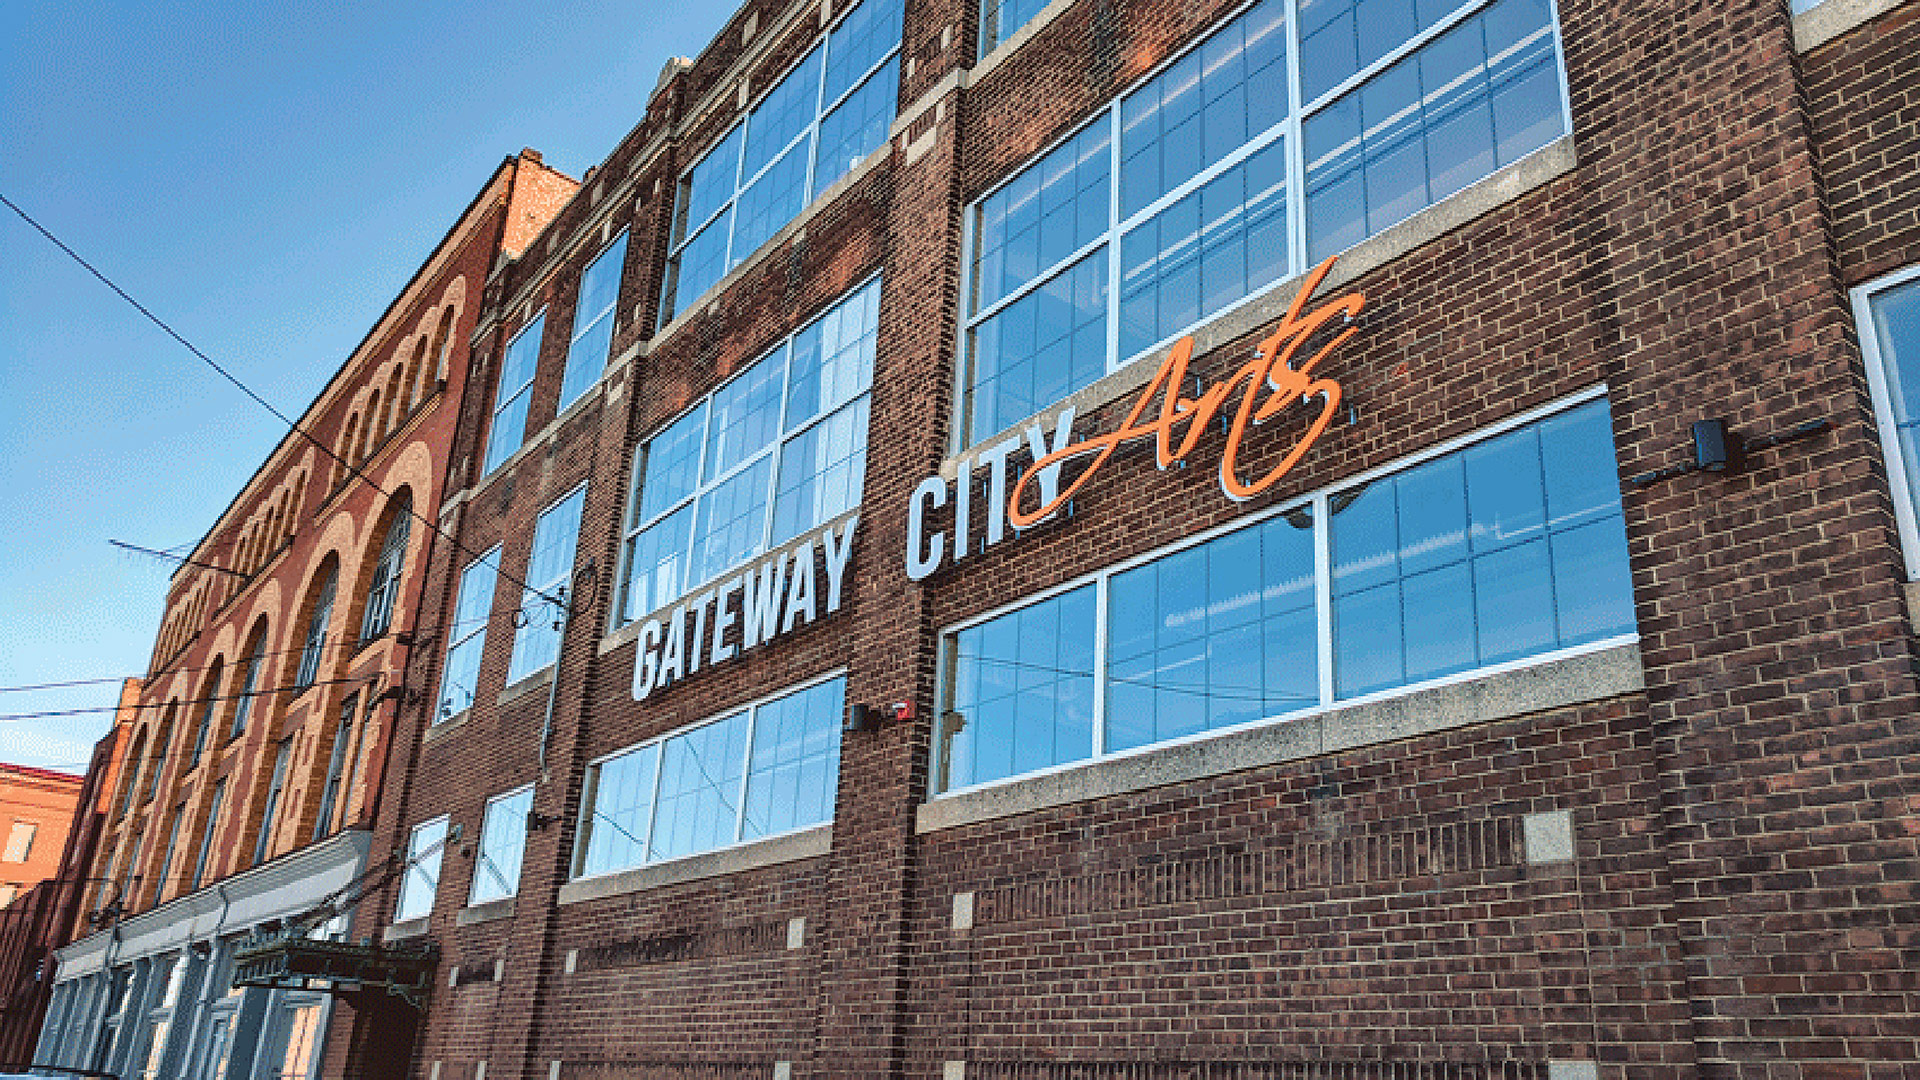 Gateway City Arts is just one of many Holyoke businesses